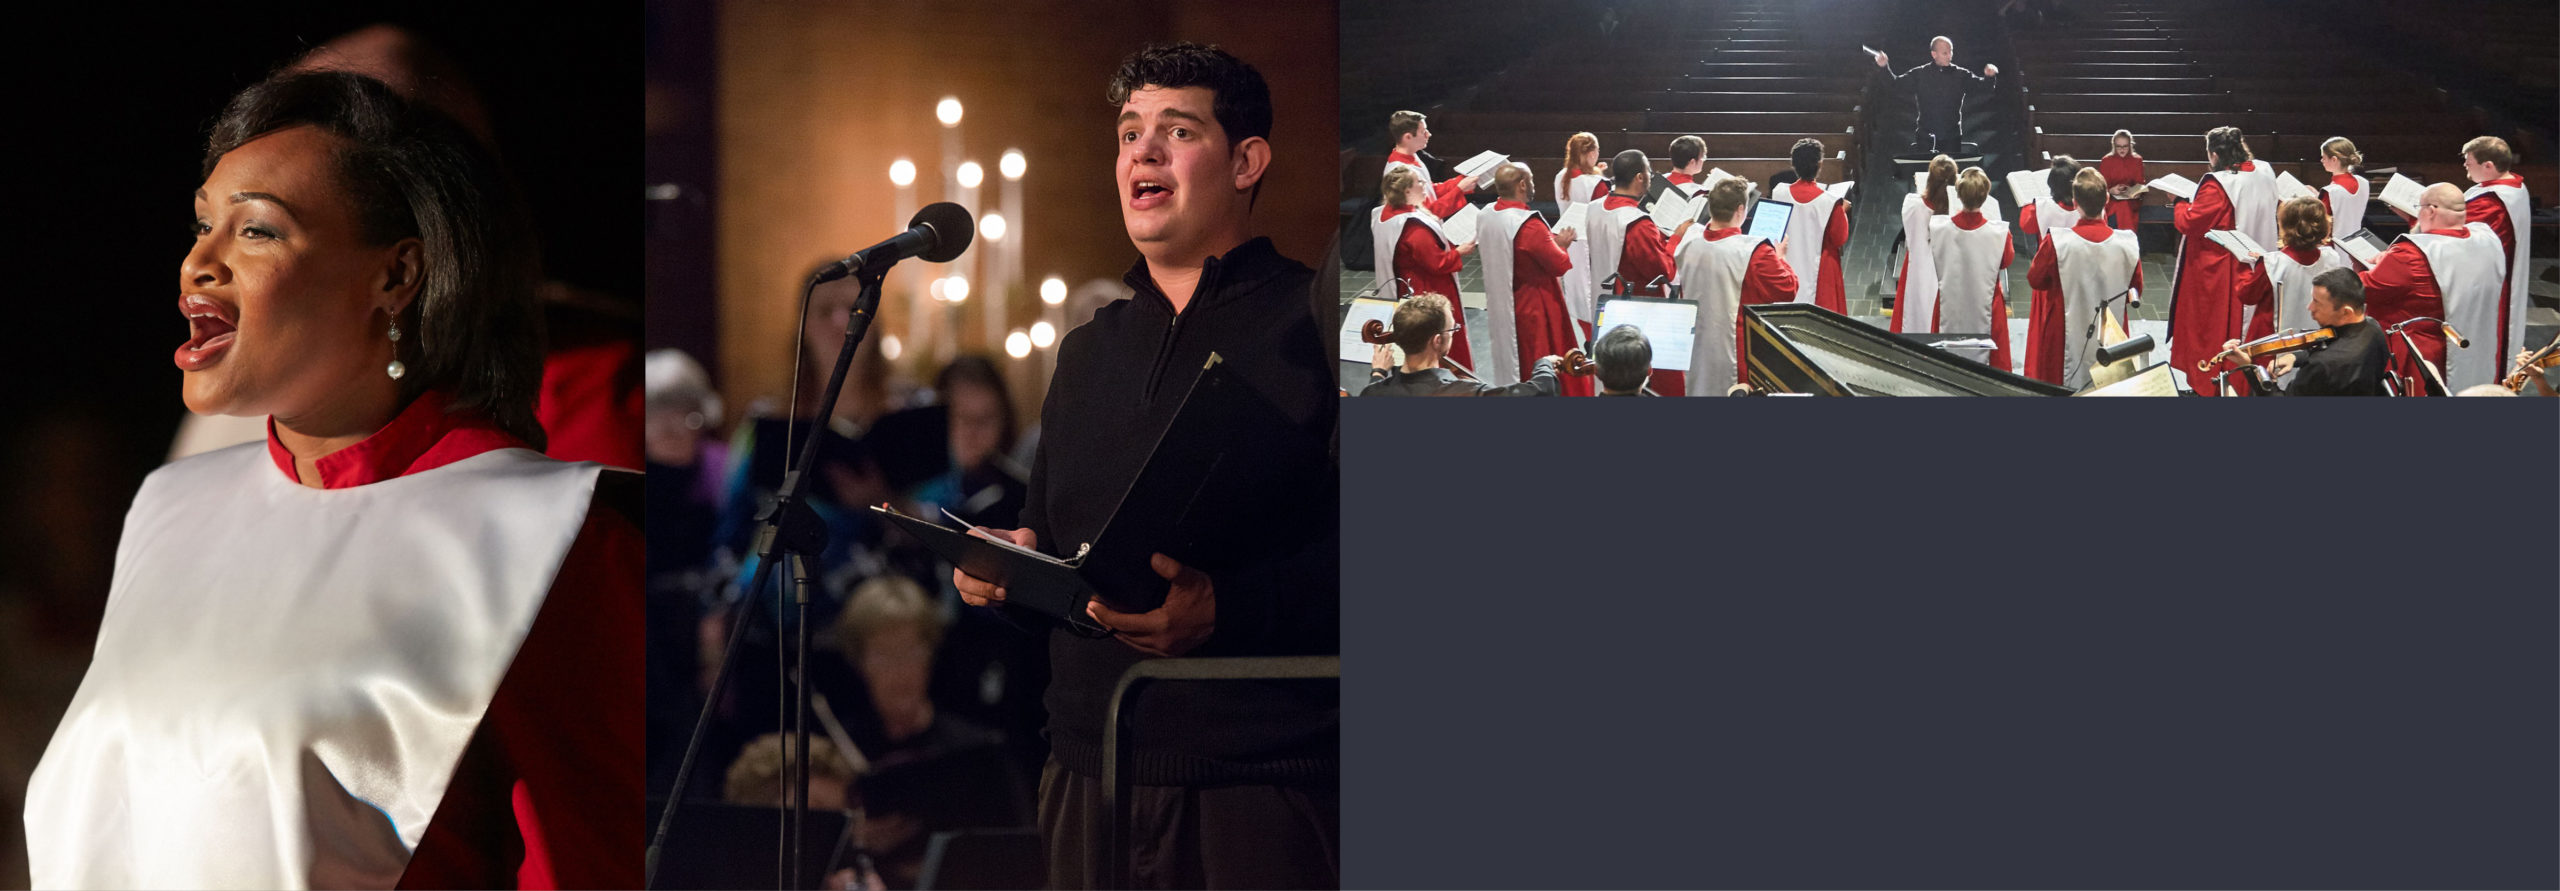 Sacred choral music series